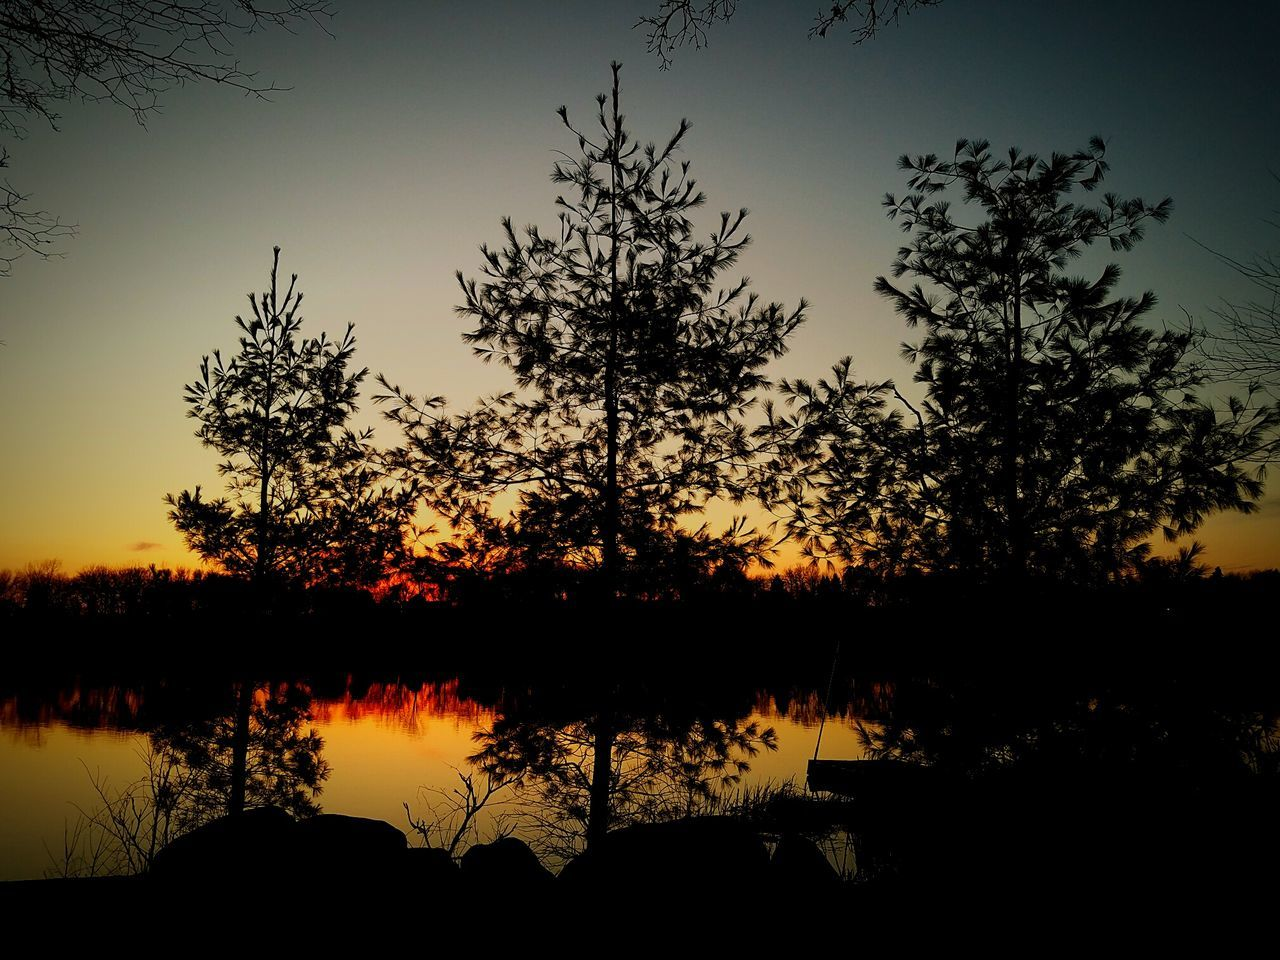 Minnesota Sunset Silhouettes Lake Outdoors Sky Landscape Reflection Tranquility Nature Reflection Onthelake Sunset Wideopenspaces Through My Eyes CountryLivinG Grateful Lifeisagift Livelaughlove♡ Sunlight Trails